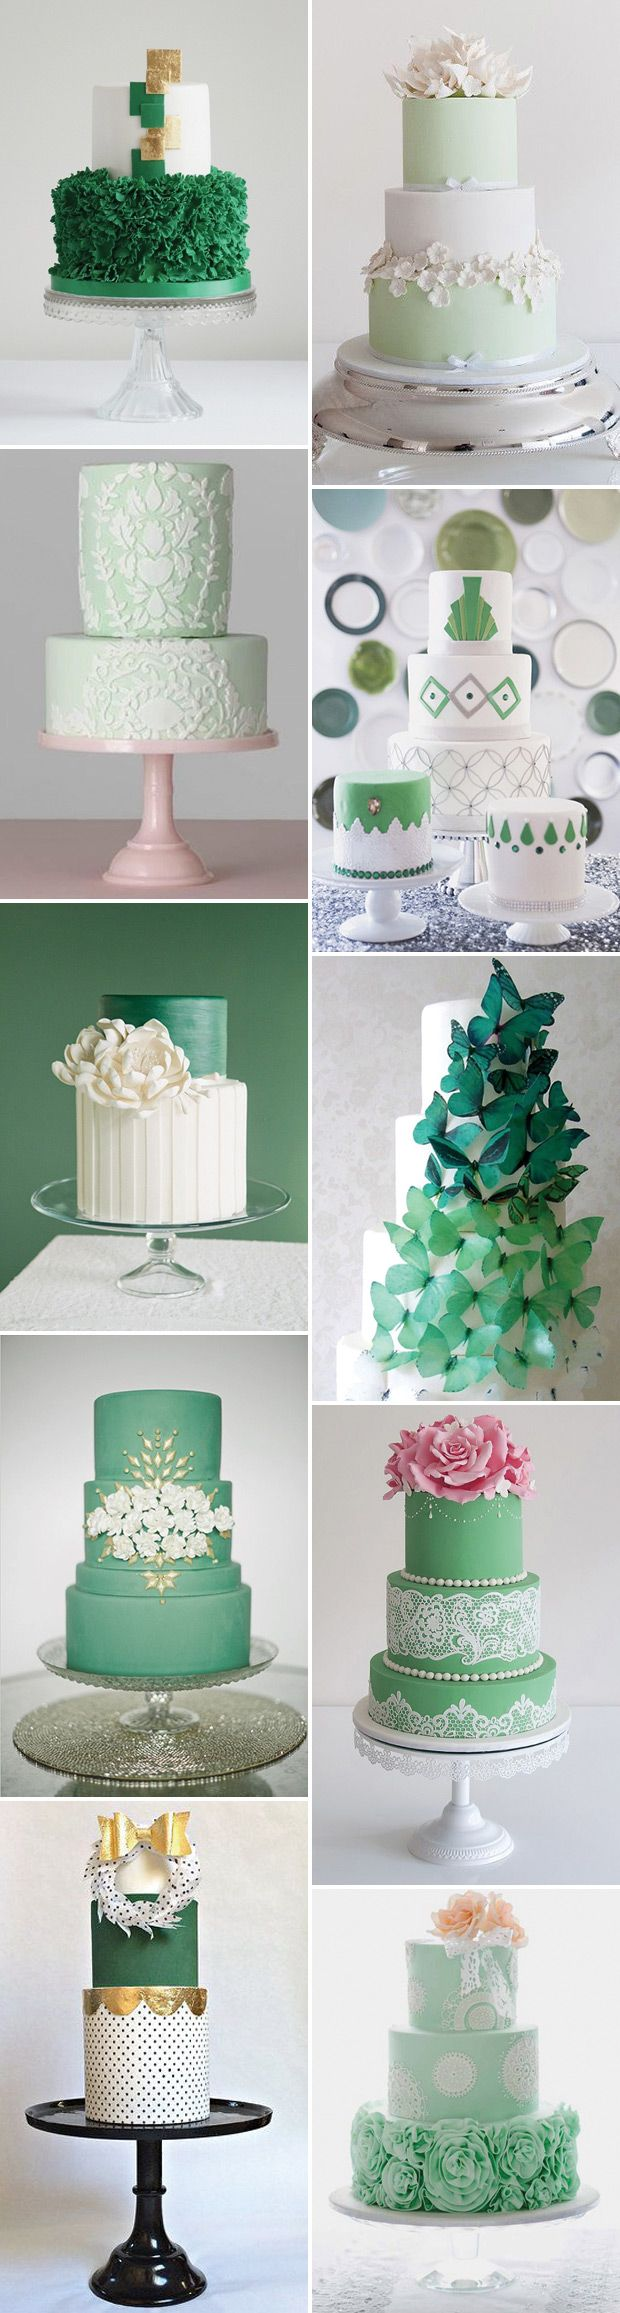 Perfect for all you green lovers and for anyone searching for the perfect cake, we've picked out some gorgeous green wedding cakes to inspire you for your big day...